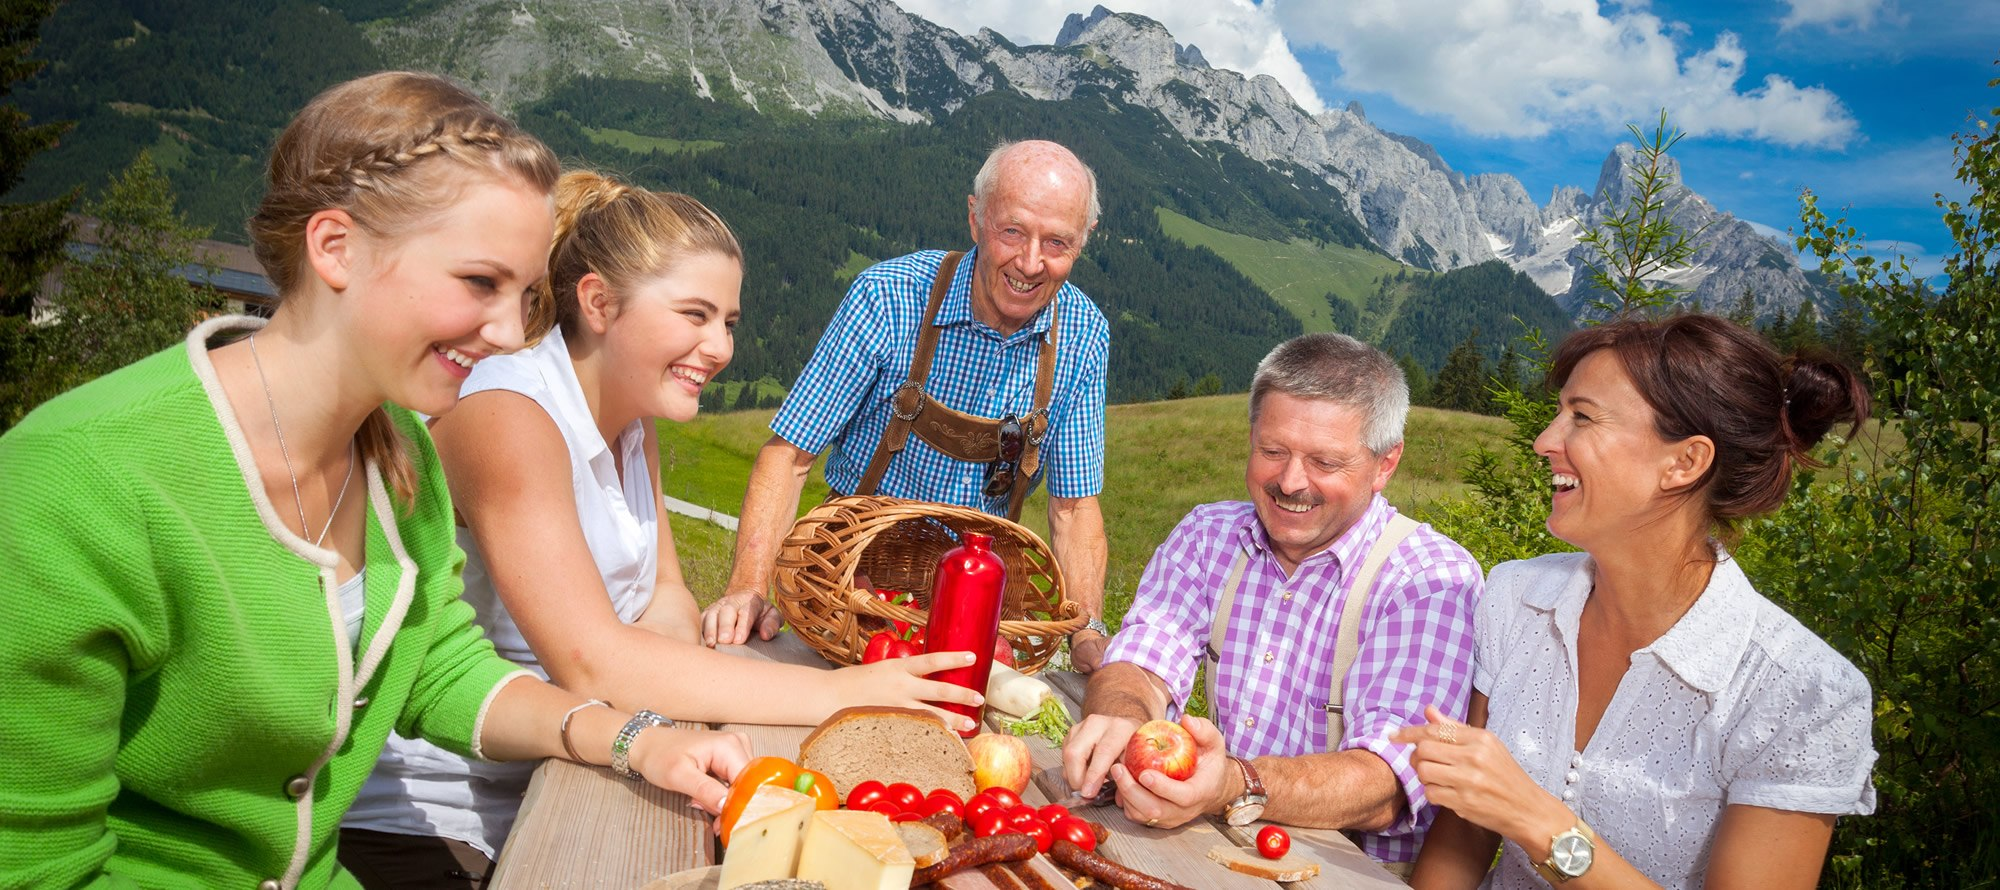 Whether hearty alpine snack or gourmet menu - the Lammeral tastes great ©TVB Annaberg-Lungötz